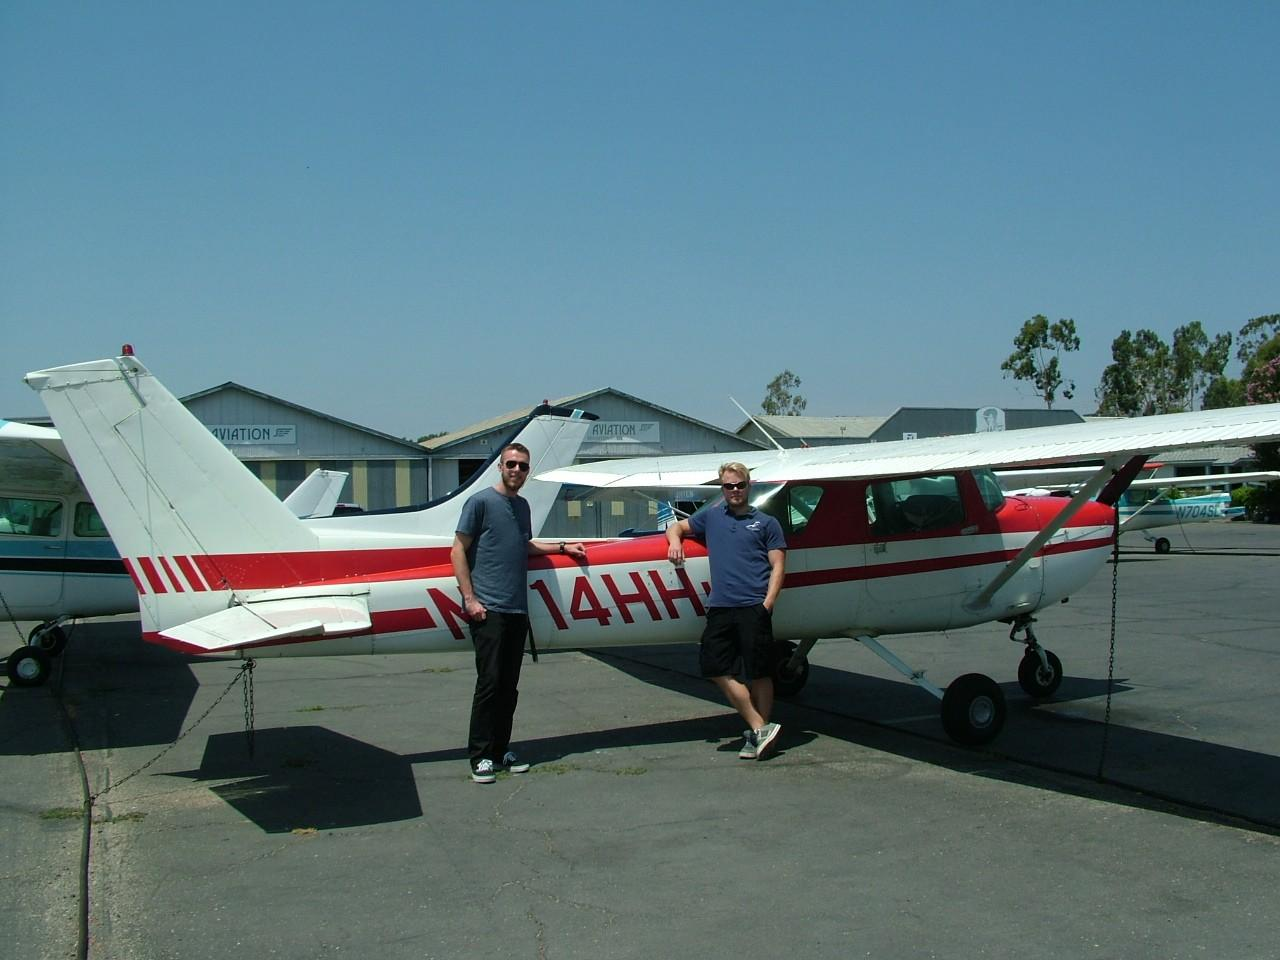 First Solo - Colton Gregory